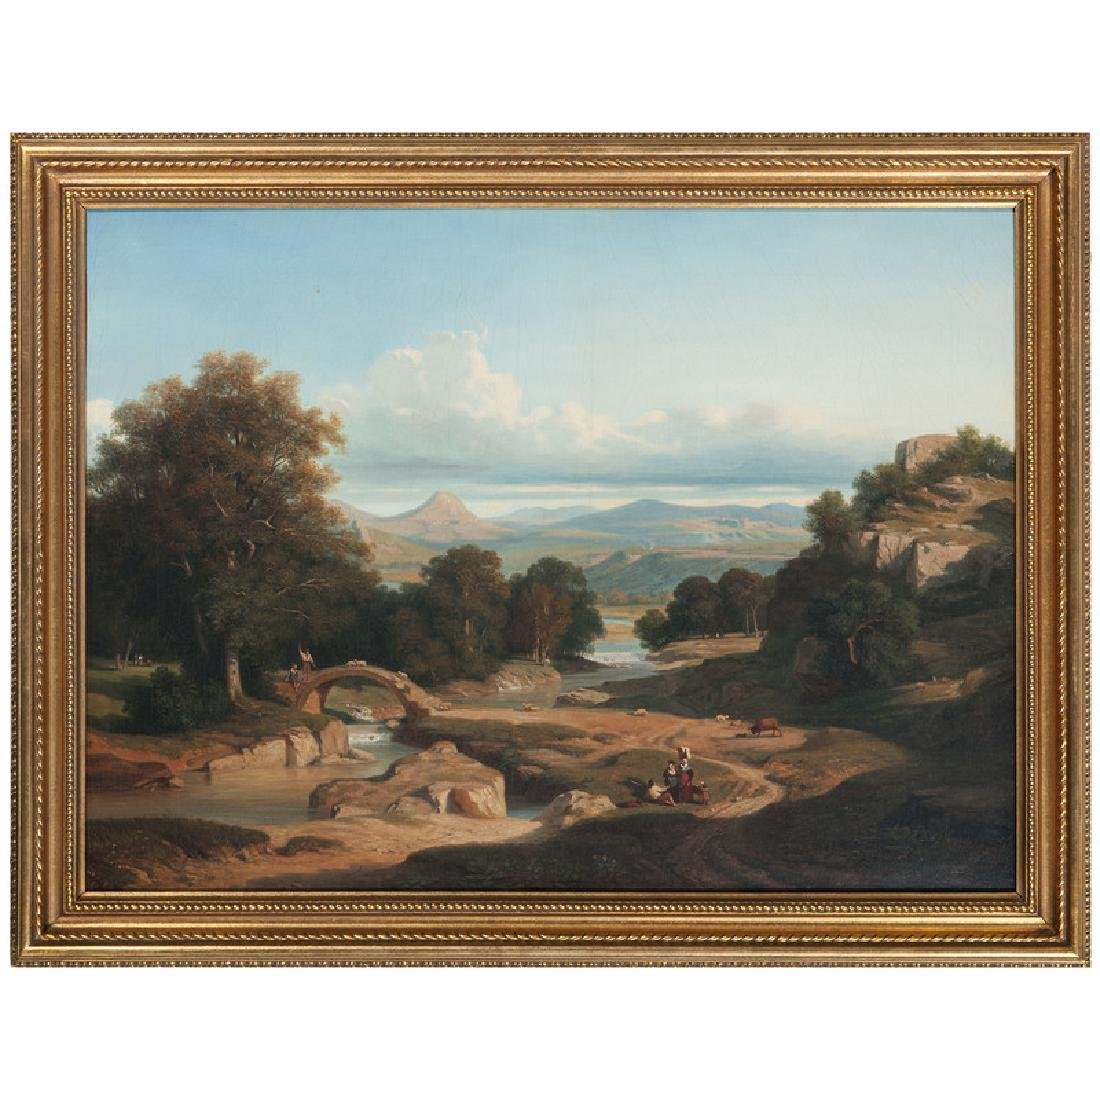 Continental, Likely Italian, Pastoral Landscape